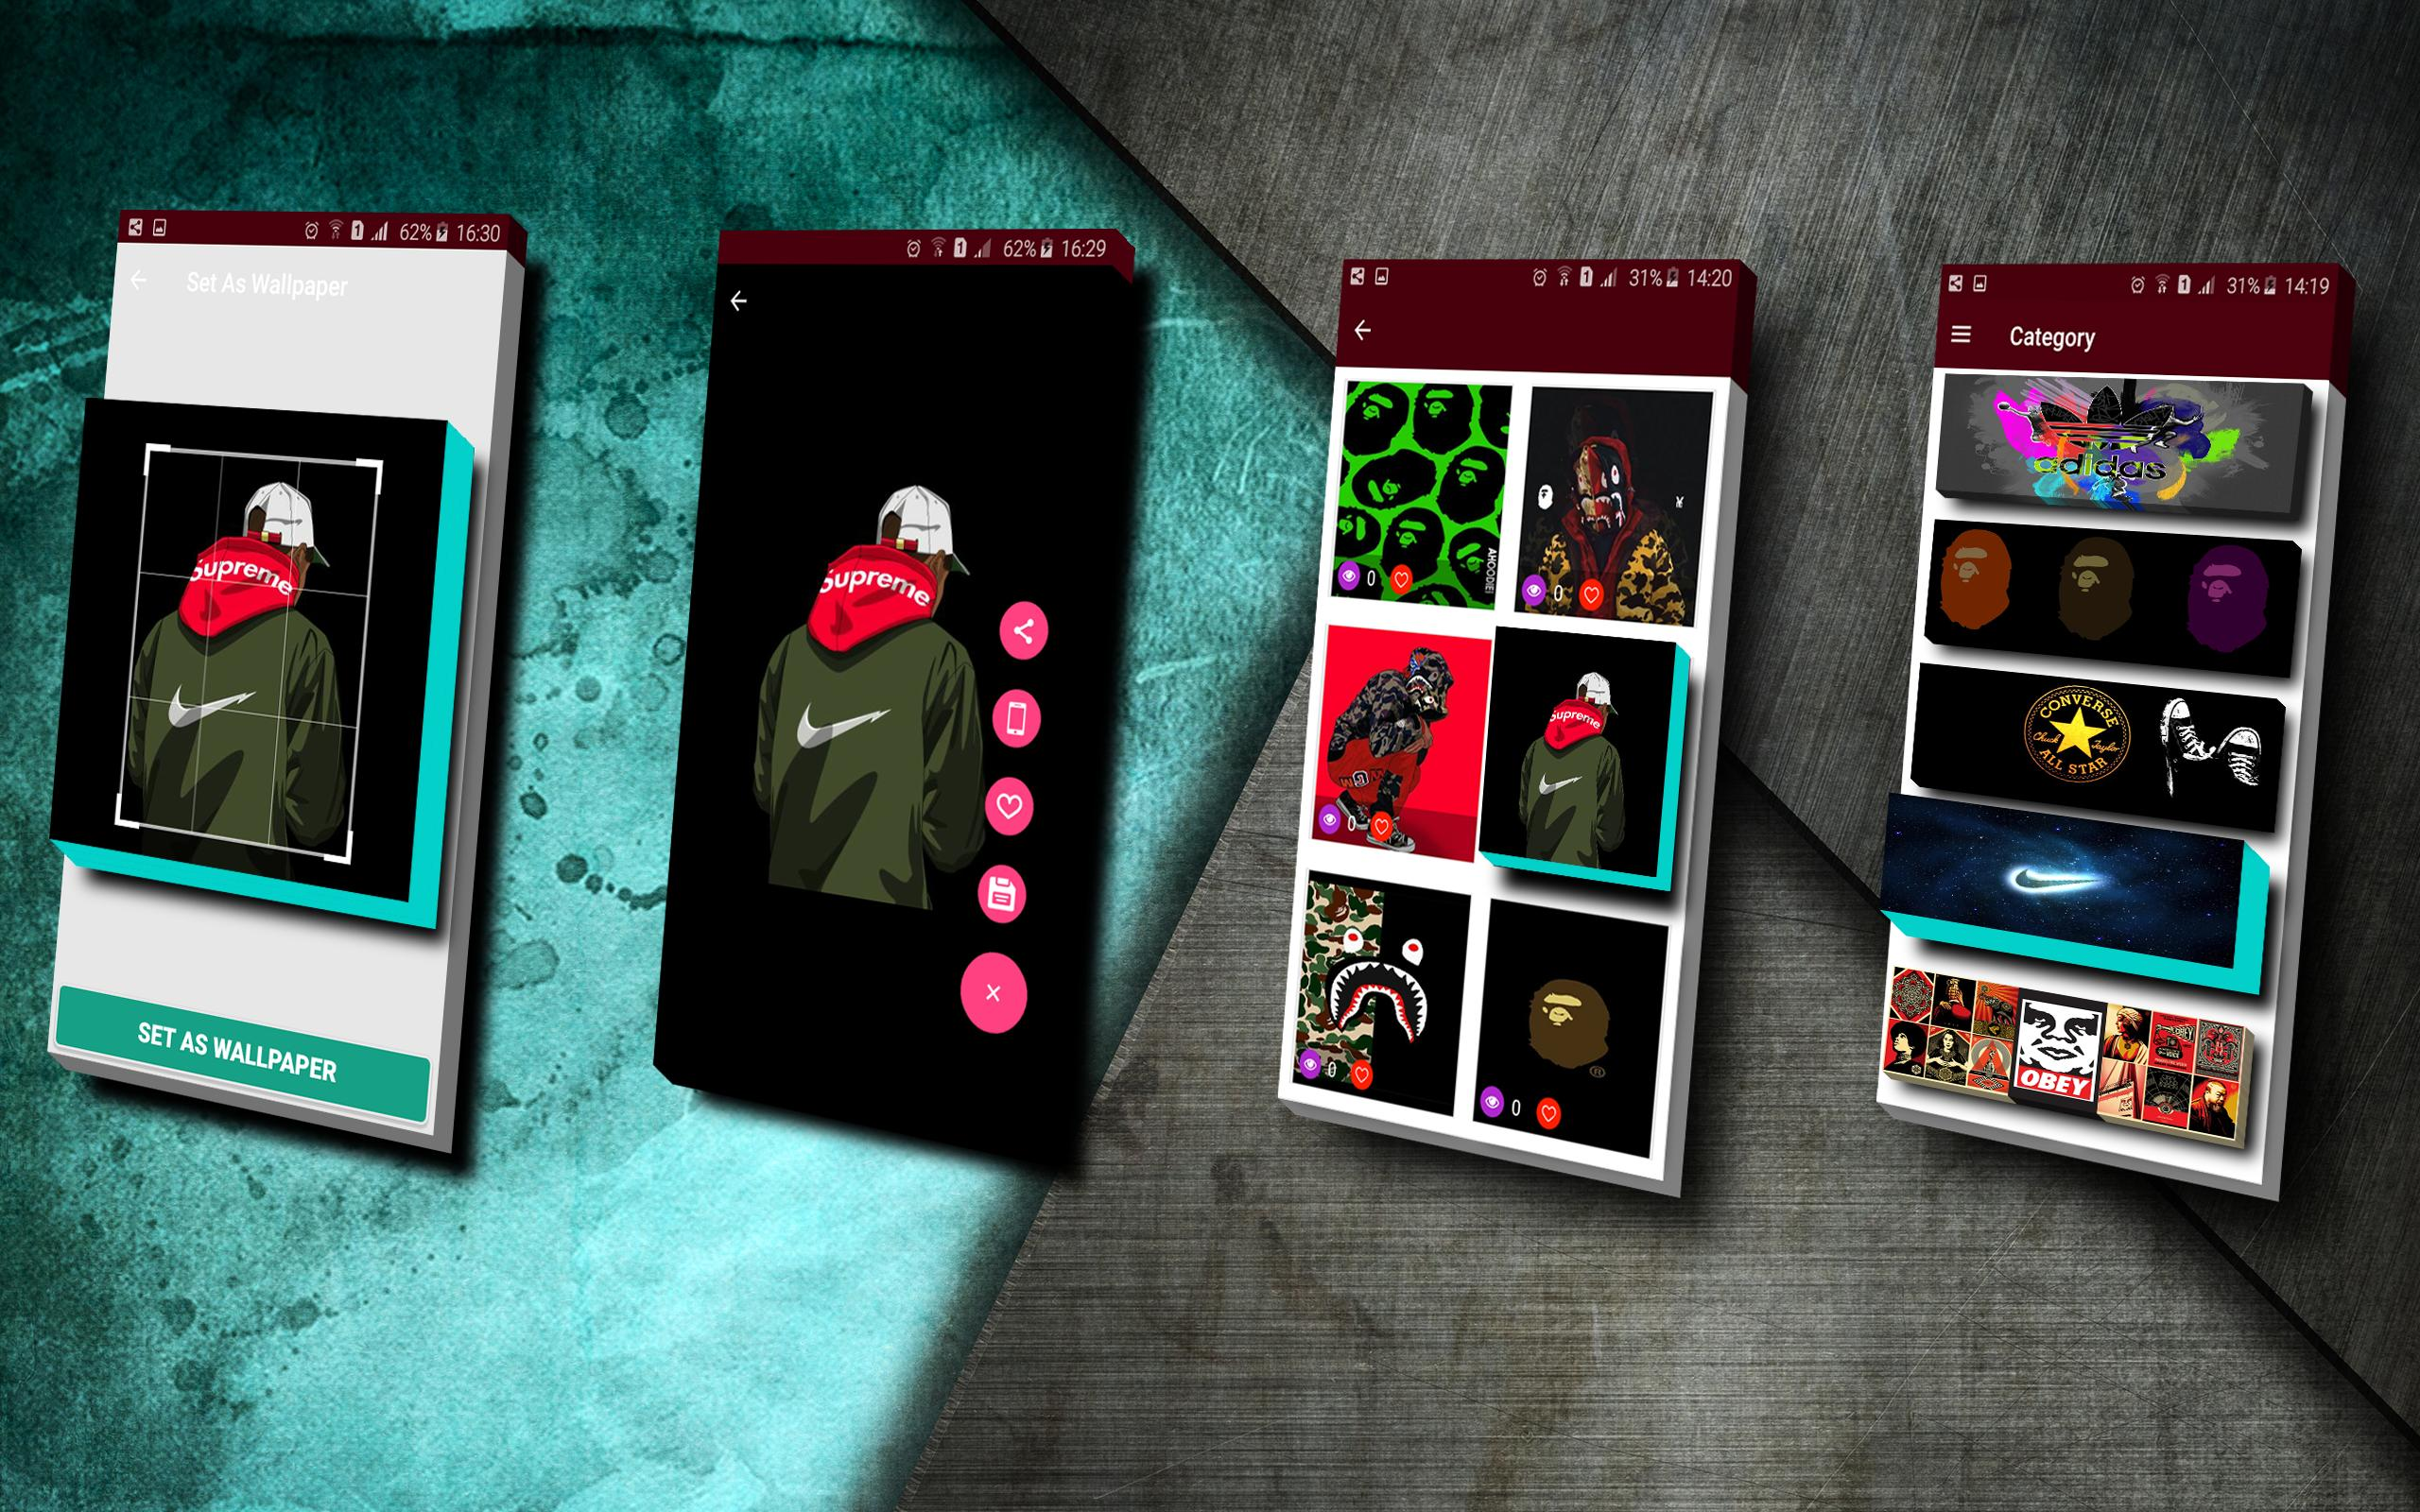 Wallpapers Gifs For Hypebeast For Android Apk Download